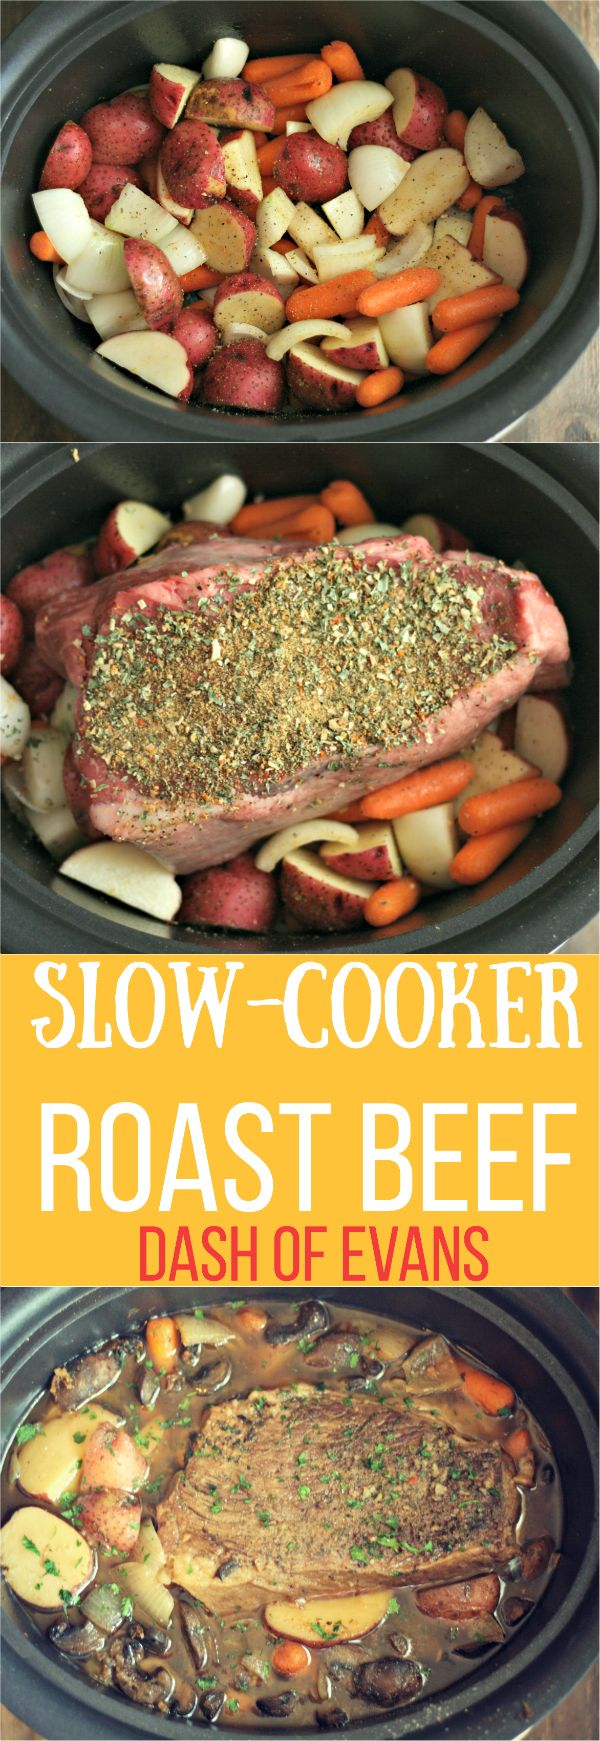 Looking for a simple, comfort food favorite? Try this Slow-Cooker Roast Beef using a Rump Roast. YUM! via @DashOfEvans